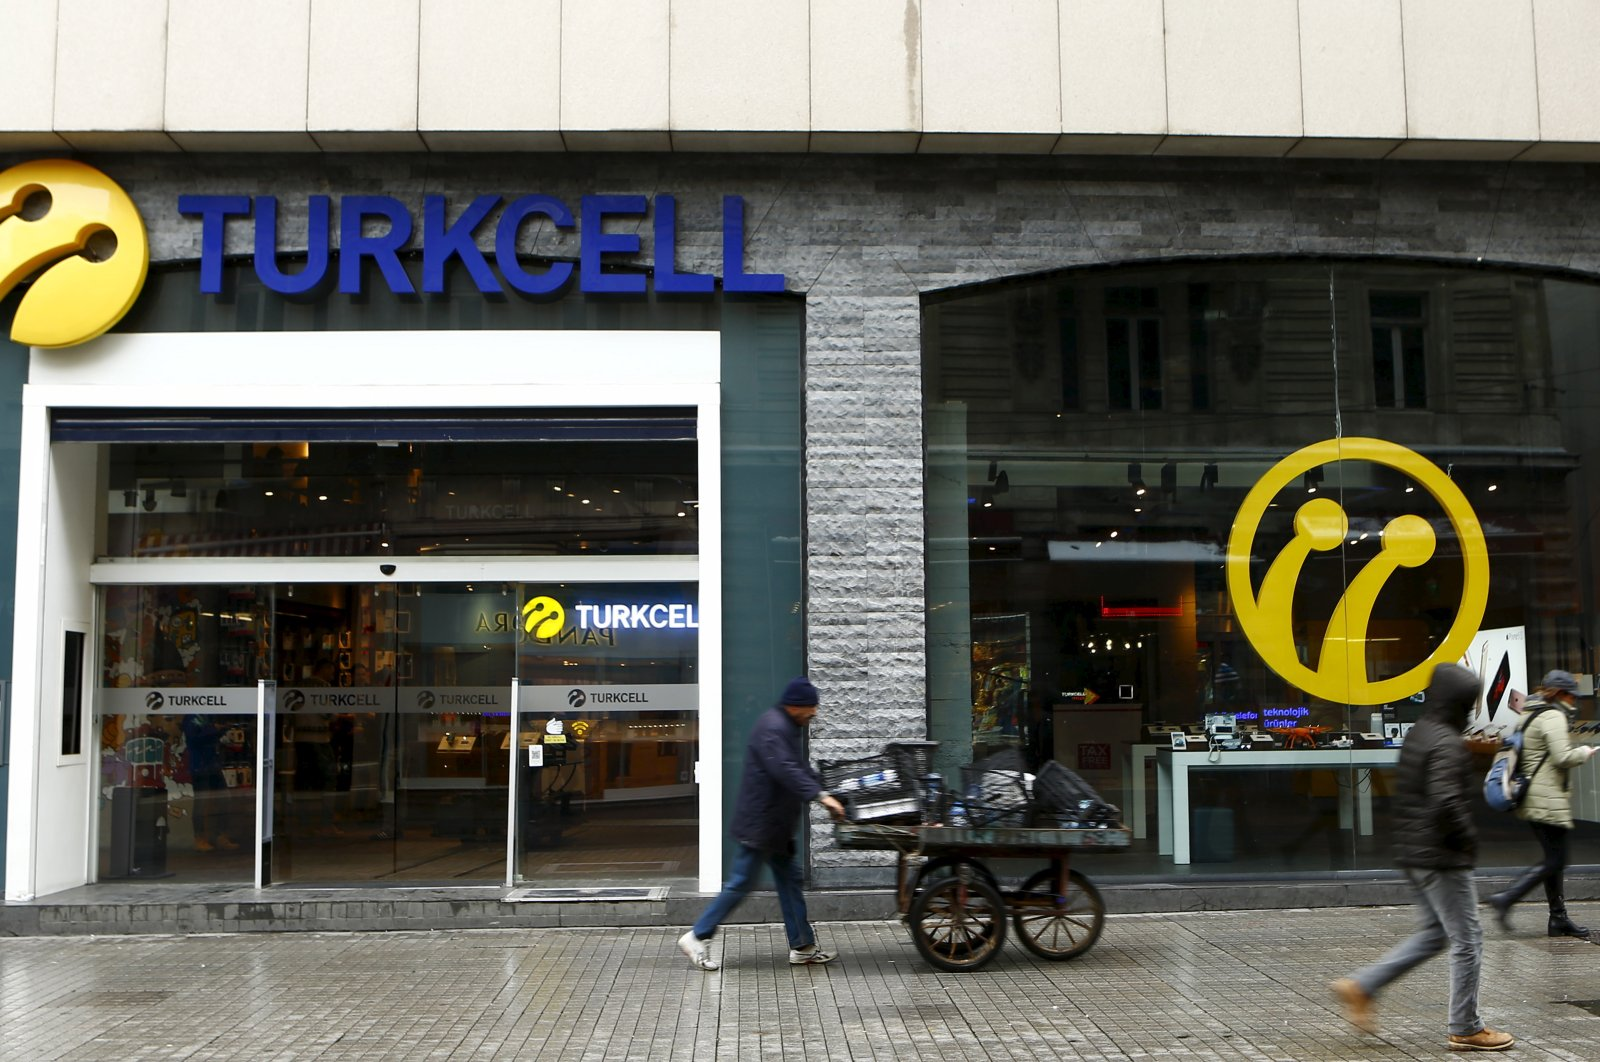 Pedestrians walk past by the main Turkcell shop in central Istanbul, Turkey, Jan. 18, 2016.